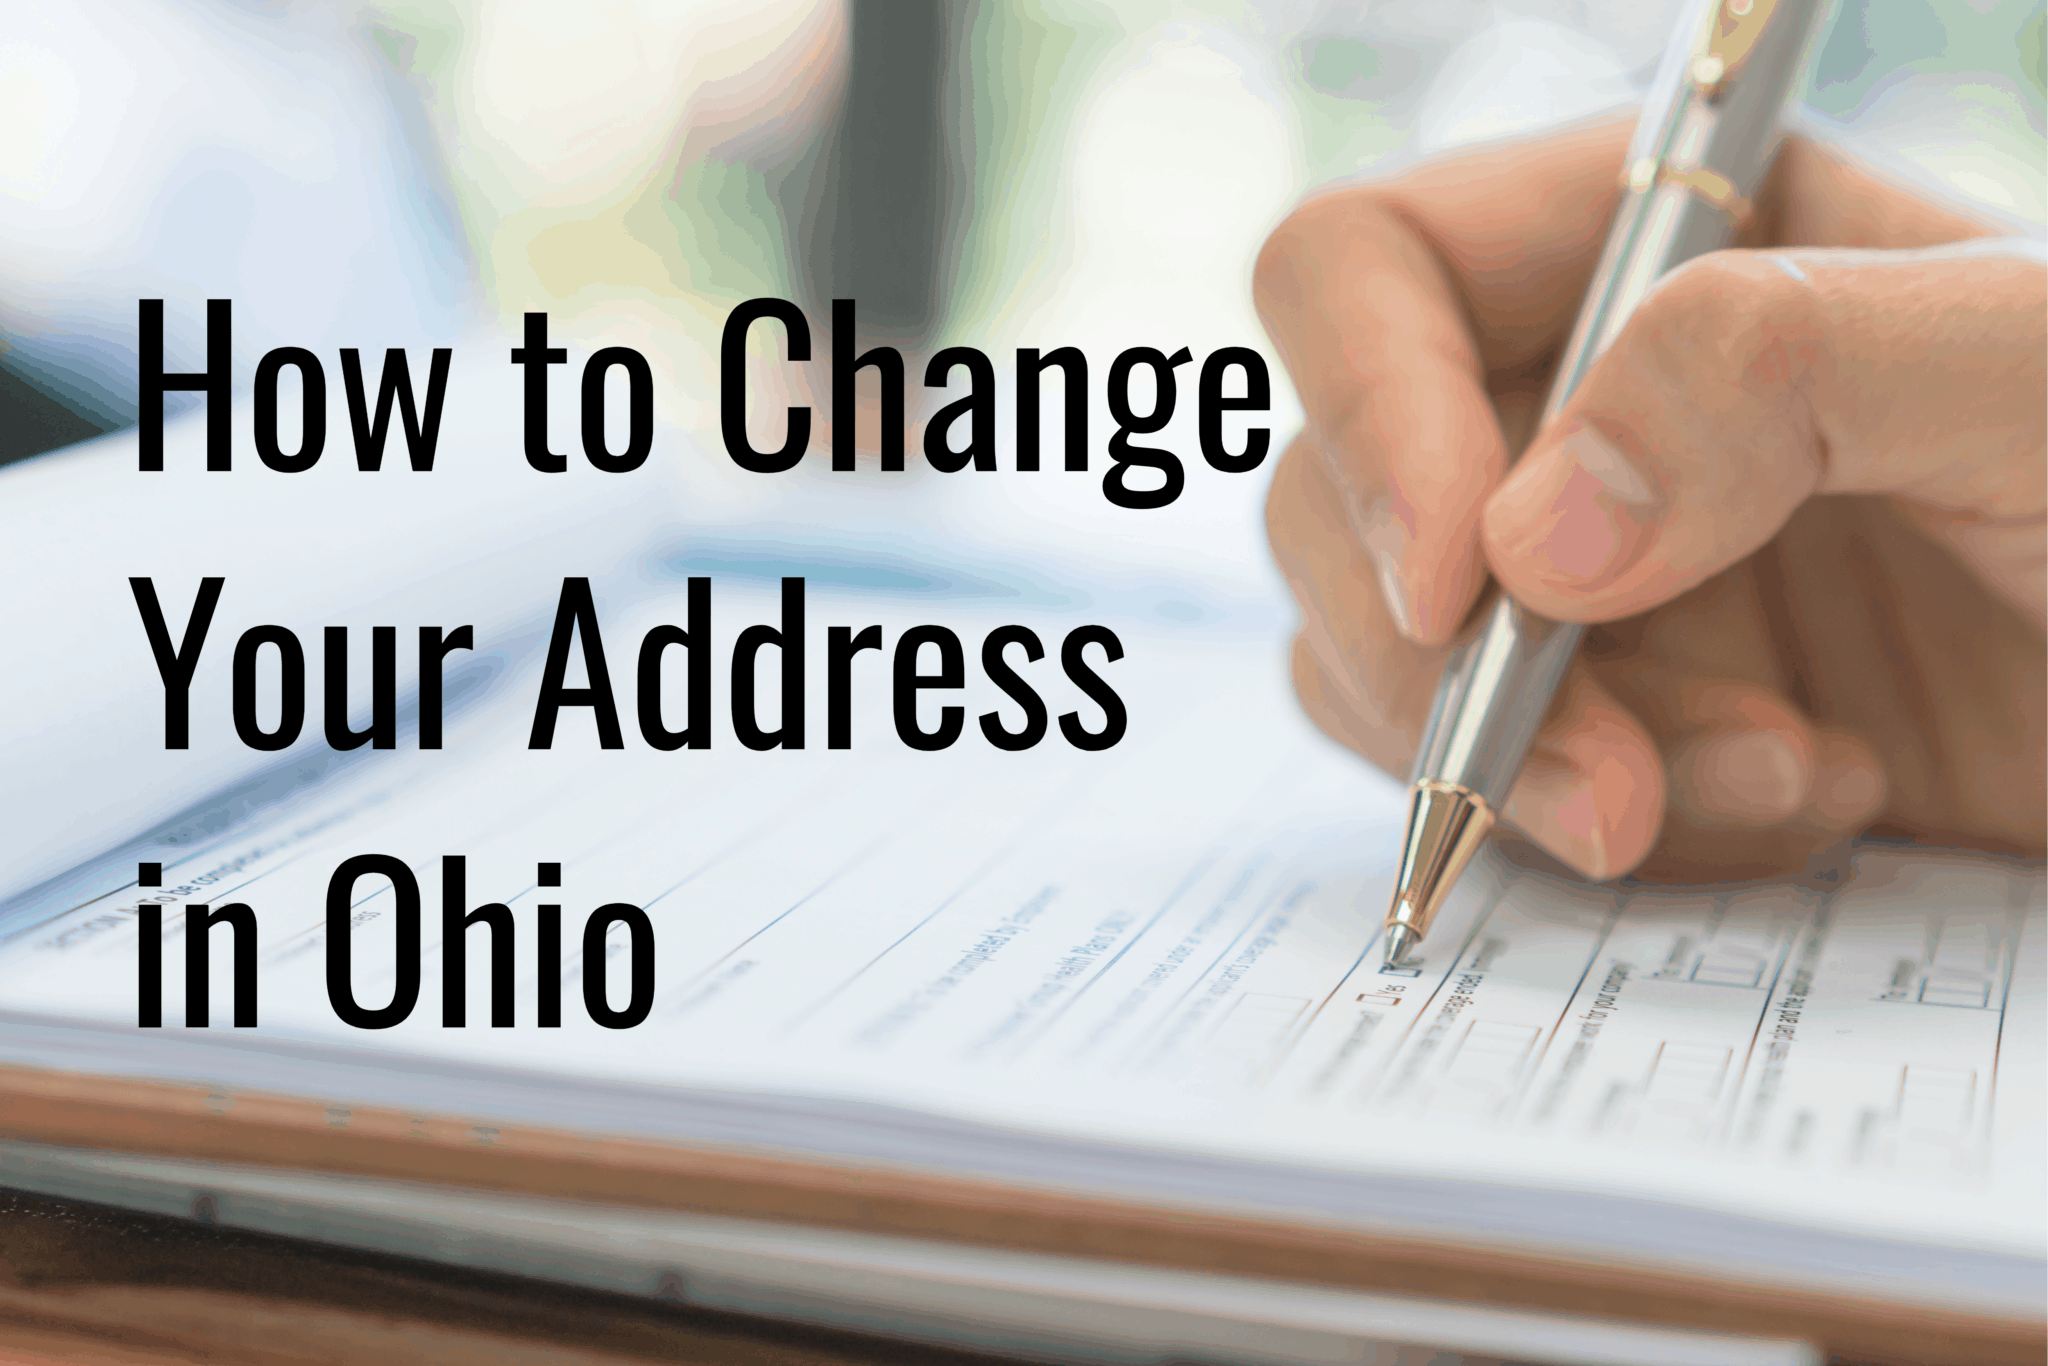 Person filling out a change of address form.